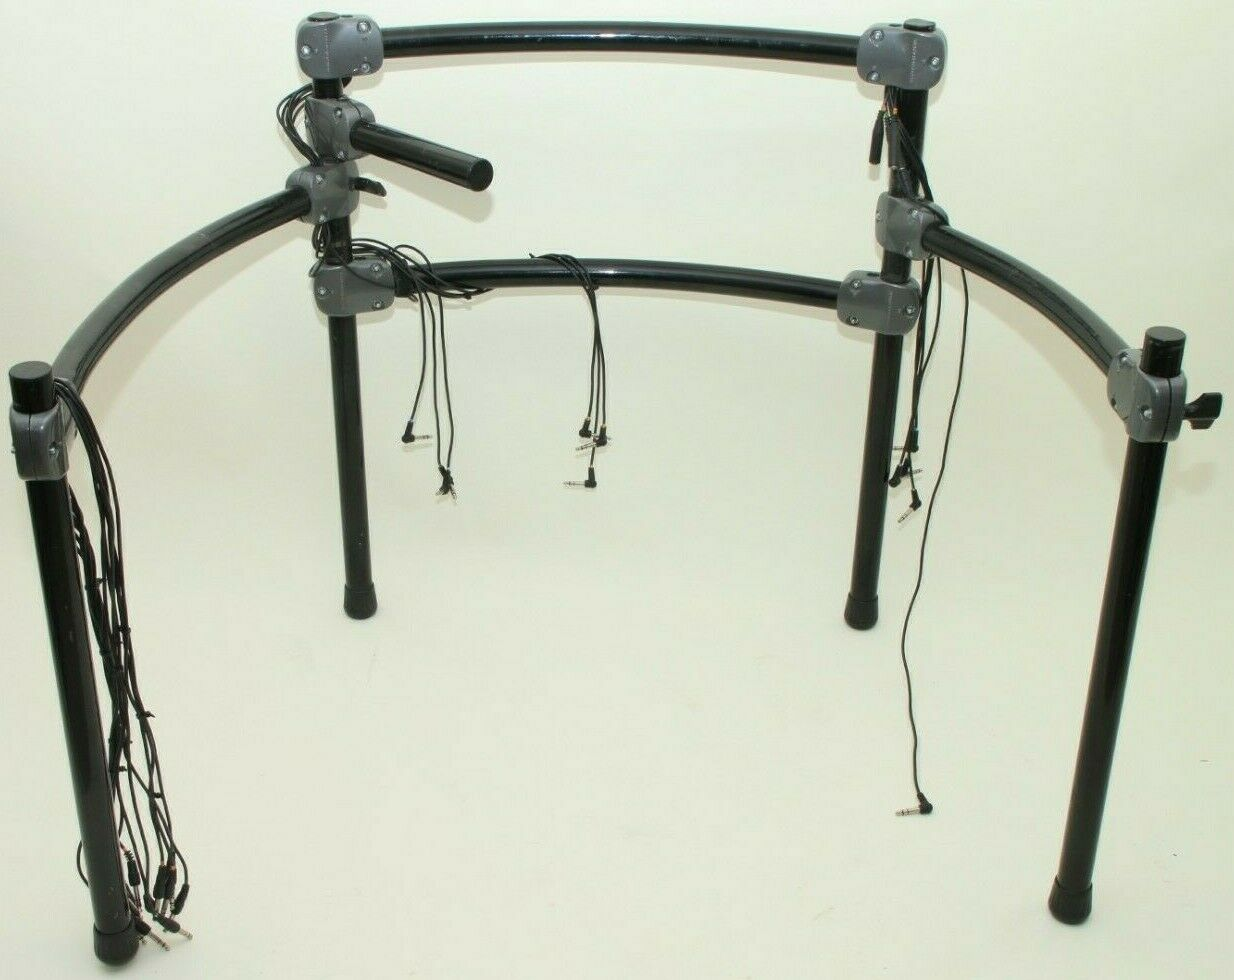 Roland MDS-12 Curved Drum Rack with Original Wiring & Cables